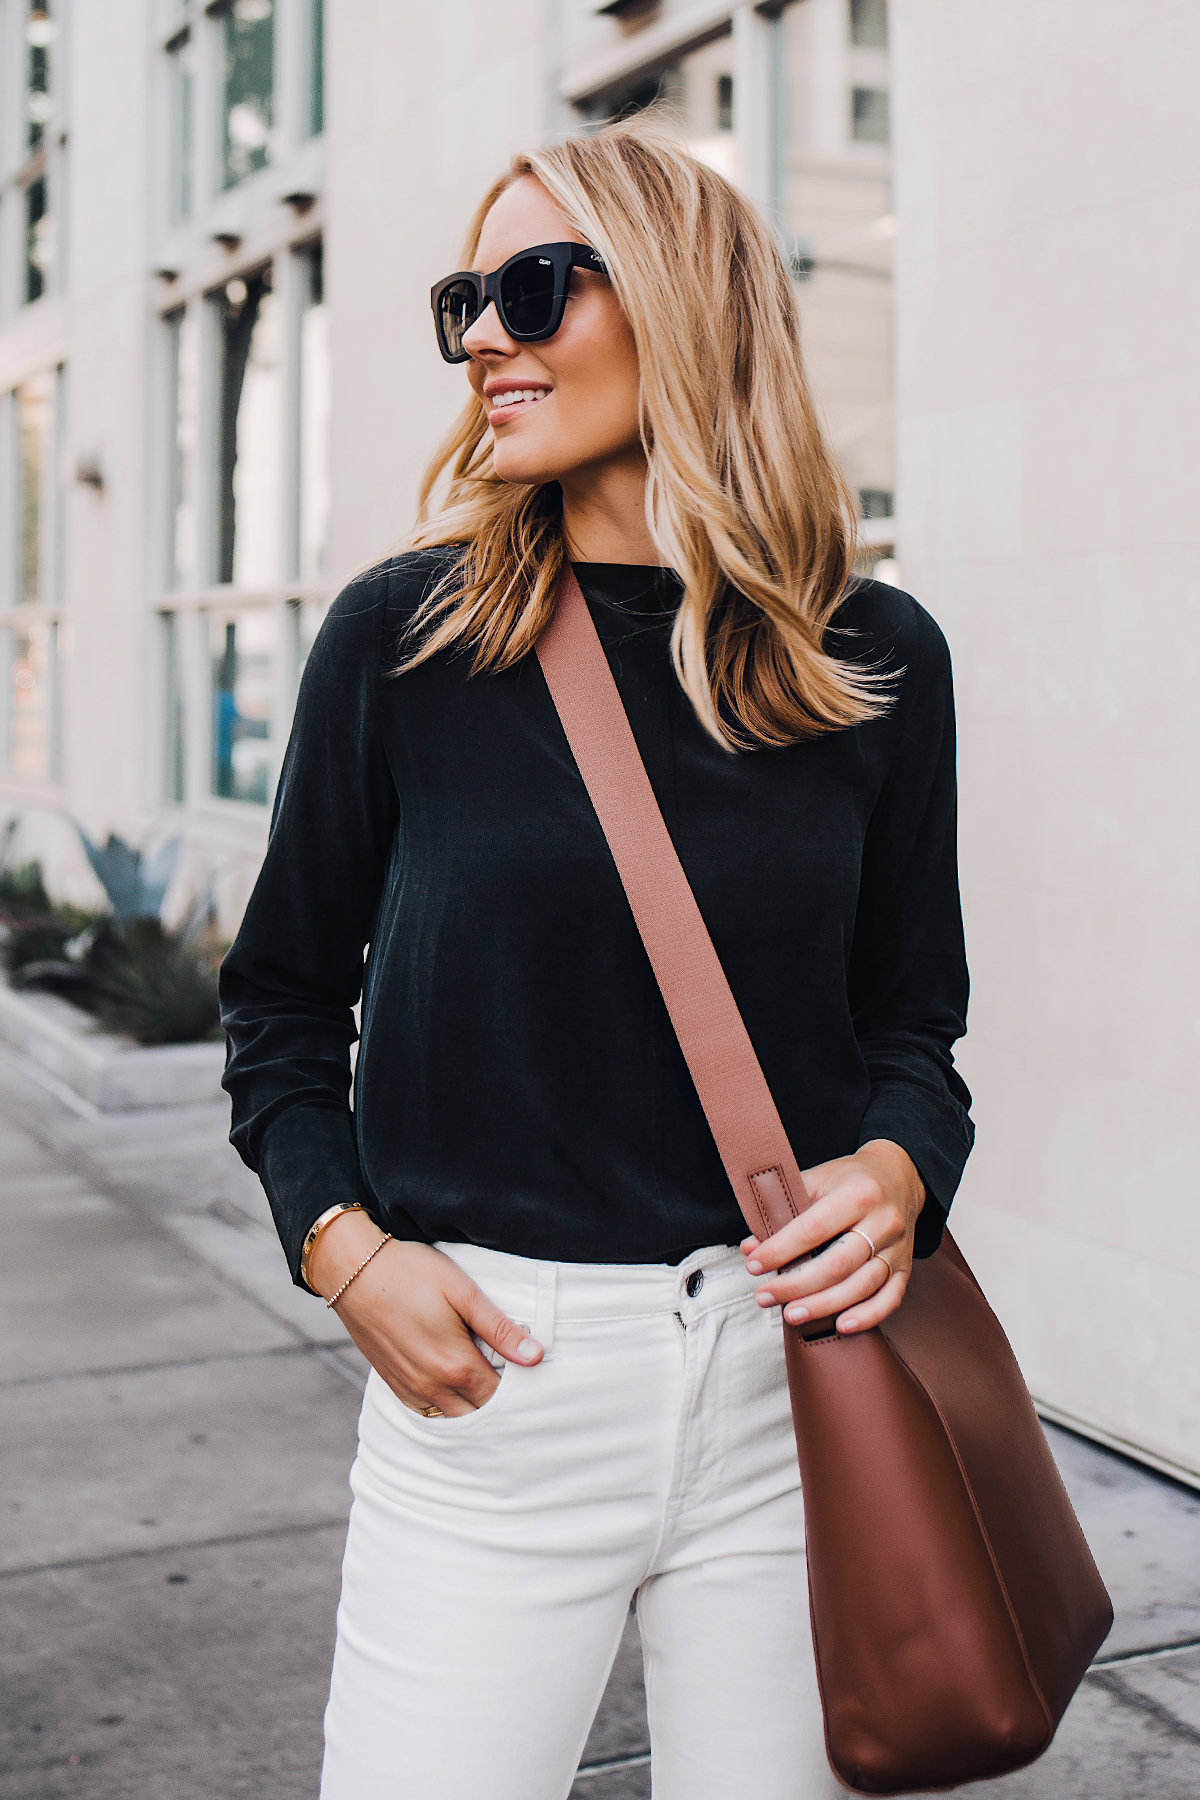 Blonde Woman Wearing Everlane Form Bag Brown Messenger Handbag Everlane Black Silk Long Sleeve Top Everlane White Jeans Fashion Jackson San Diego Fashion Blogger Street Style